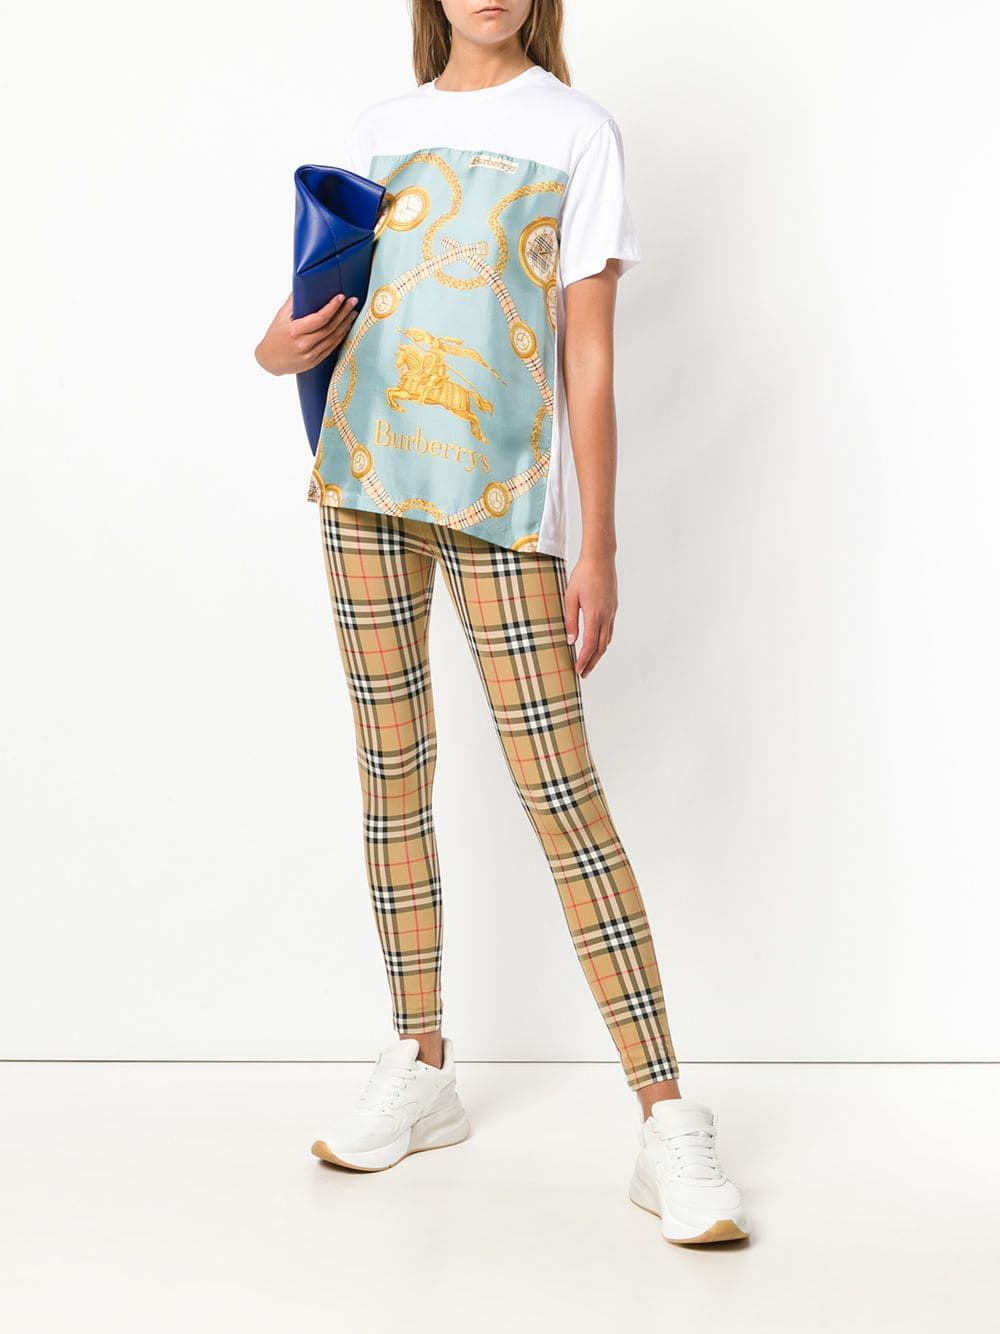 fc8dff3cb700 Burberry Archive Scarf Print Oversized T-shirt in 2018